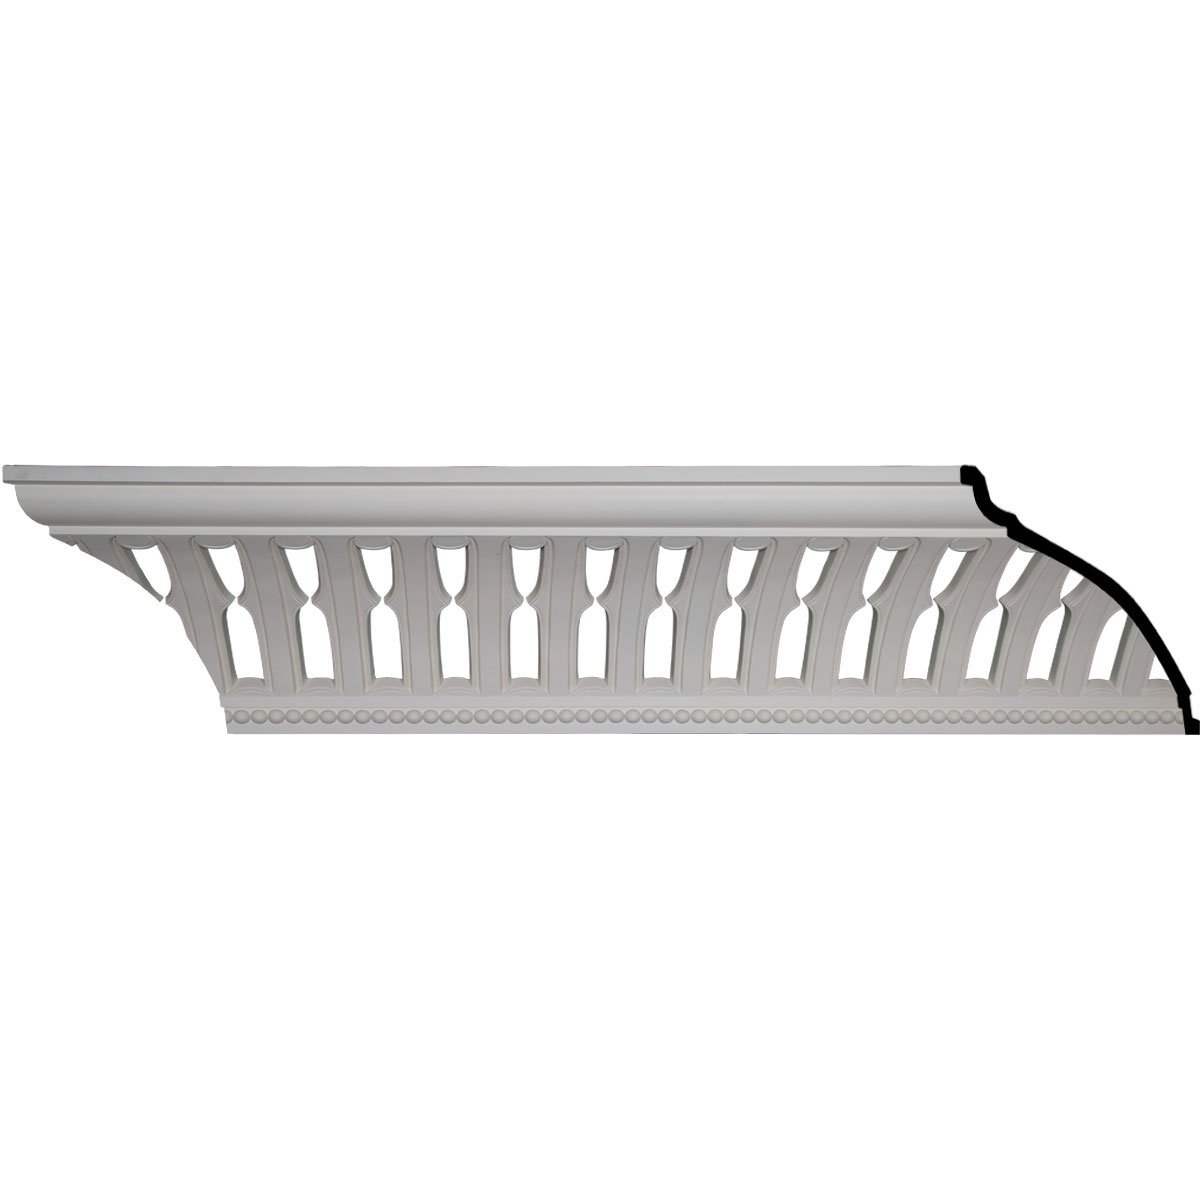 Ekena Millwork MLD15X13X20MB-CASE-2 15-1/2'' H x 13-3/8'' P x 20-5/8'' F x 96'' L Melbourne With Bead Crown Molding (2-Pack)